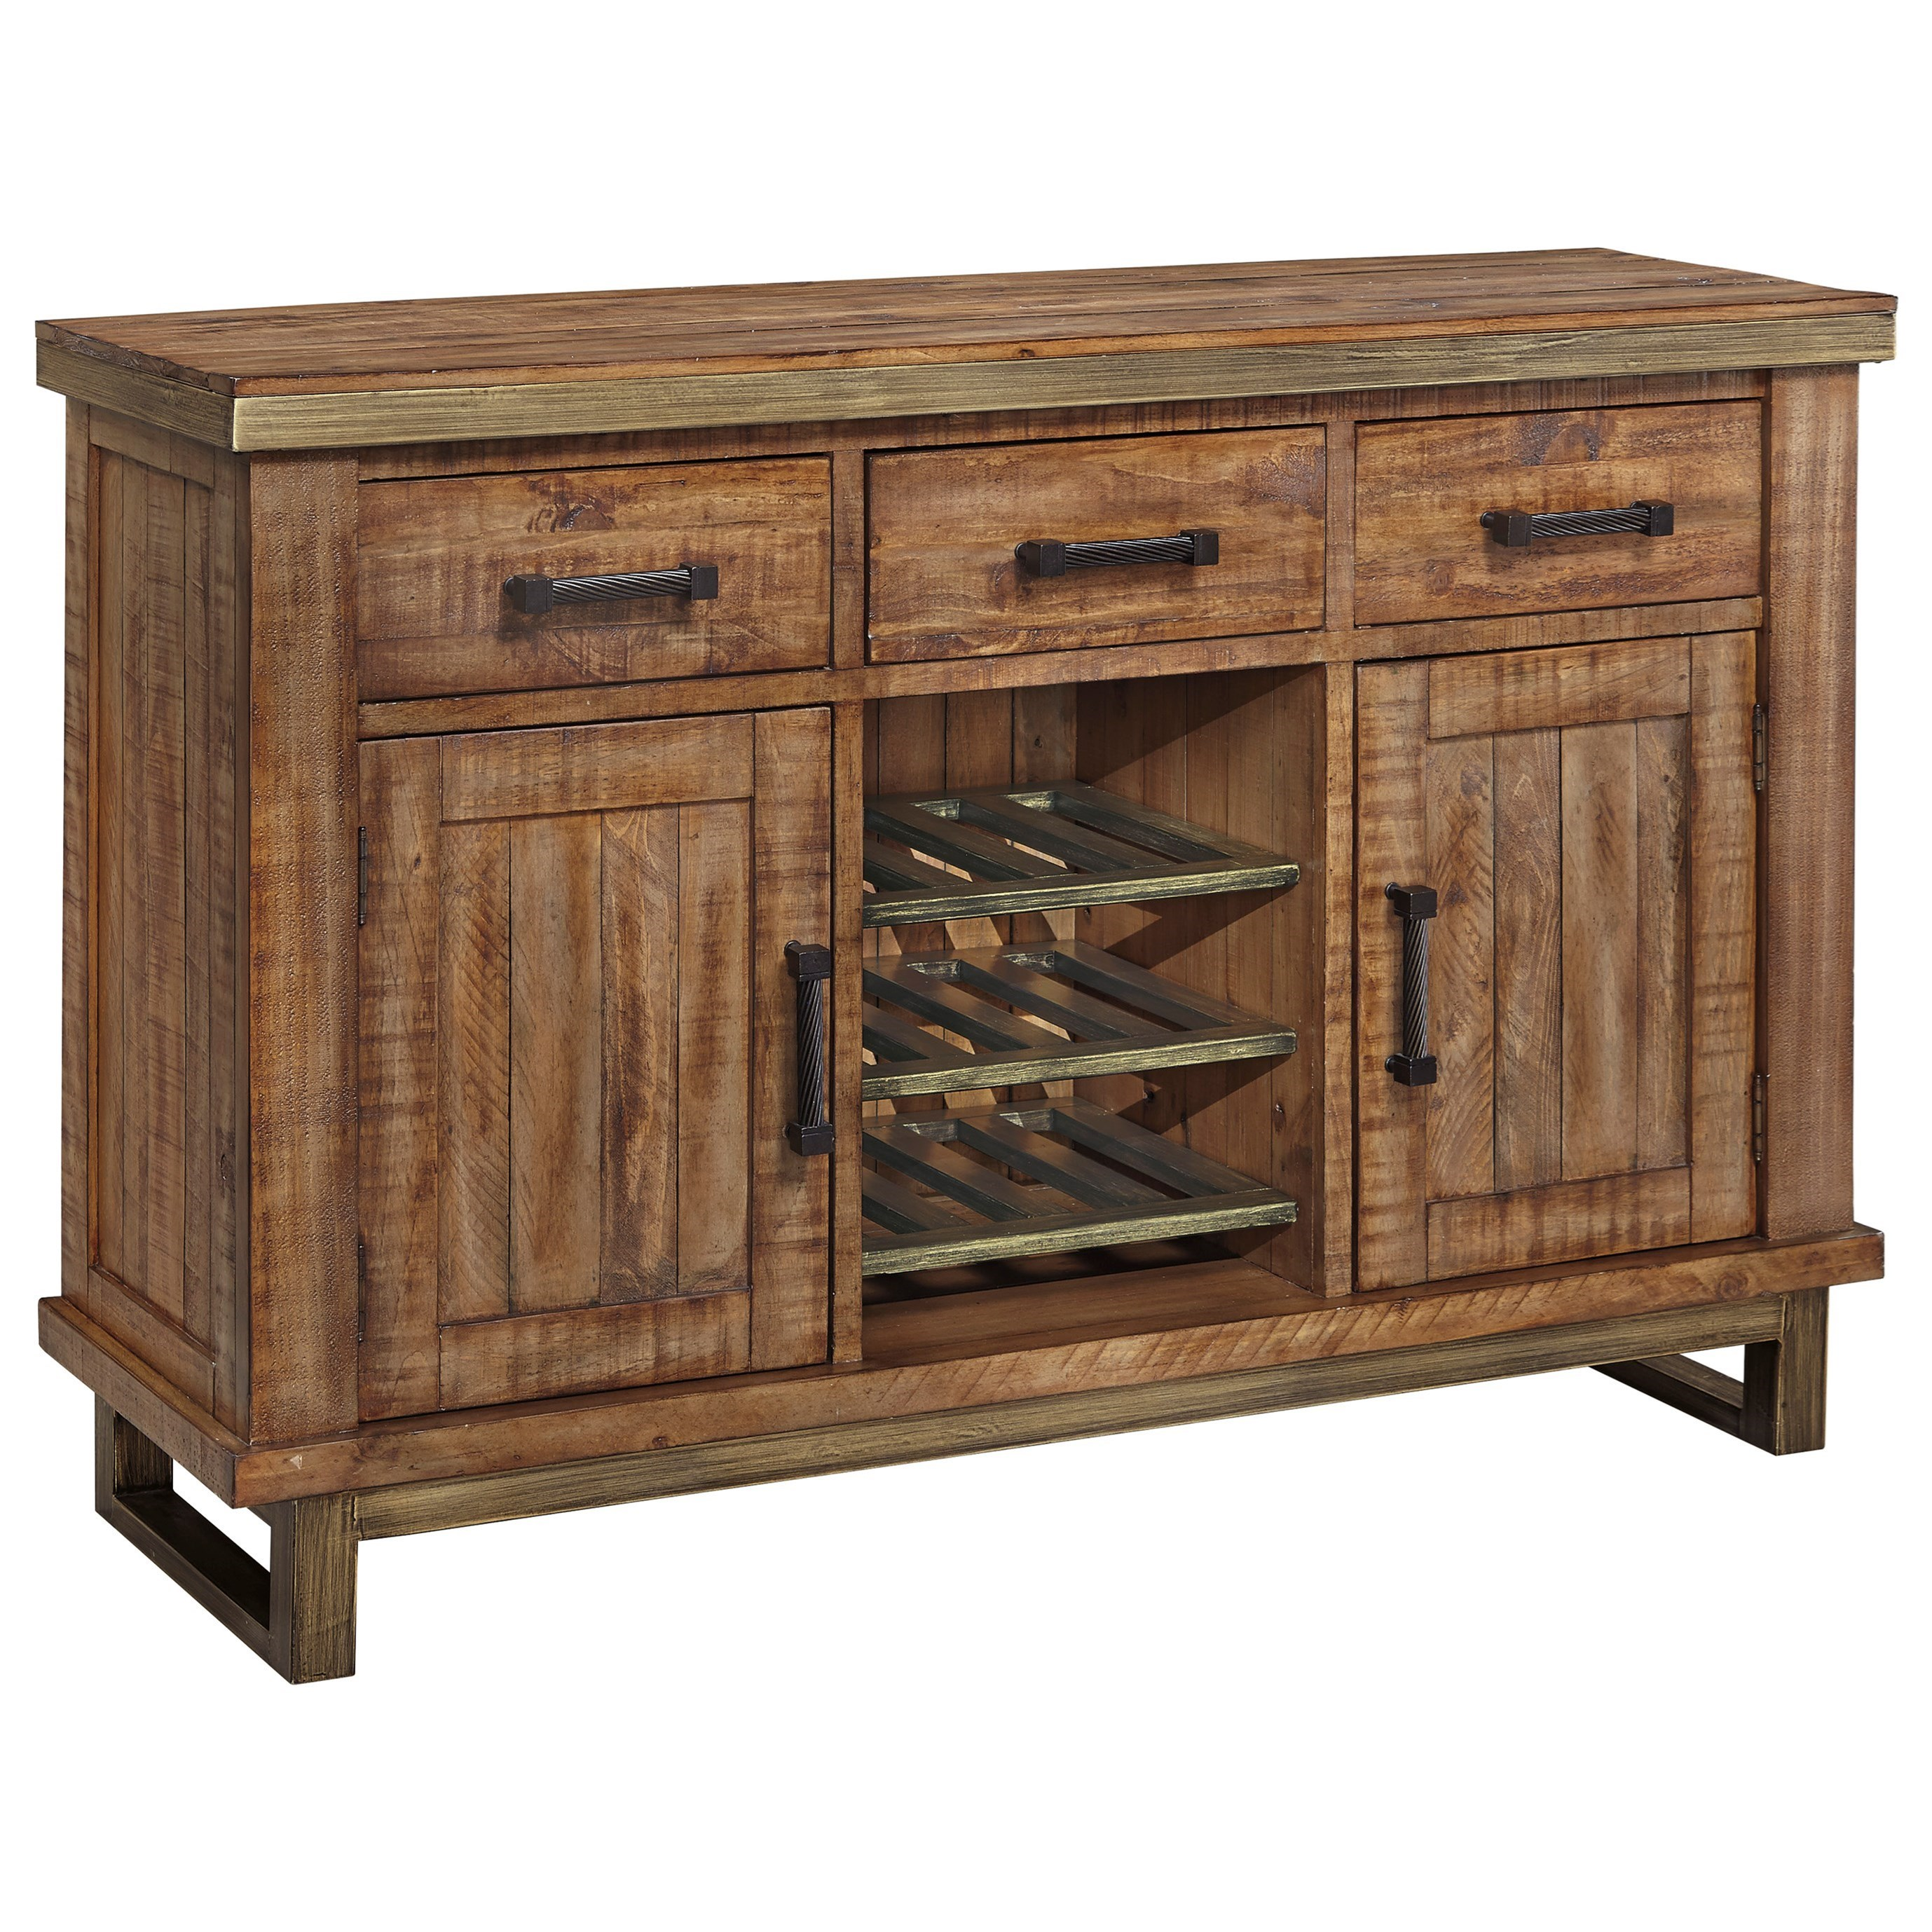 Superb img of Signature Design by Ashley Dondie Solid Wood Dining Room Server with  with #8D653E color and 2757x2757 pixels